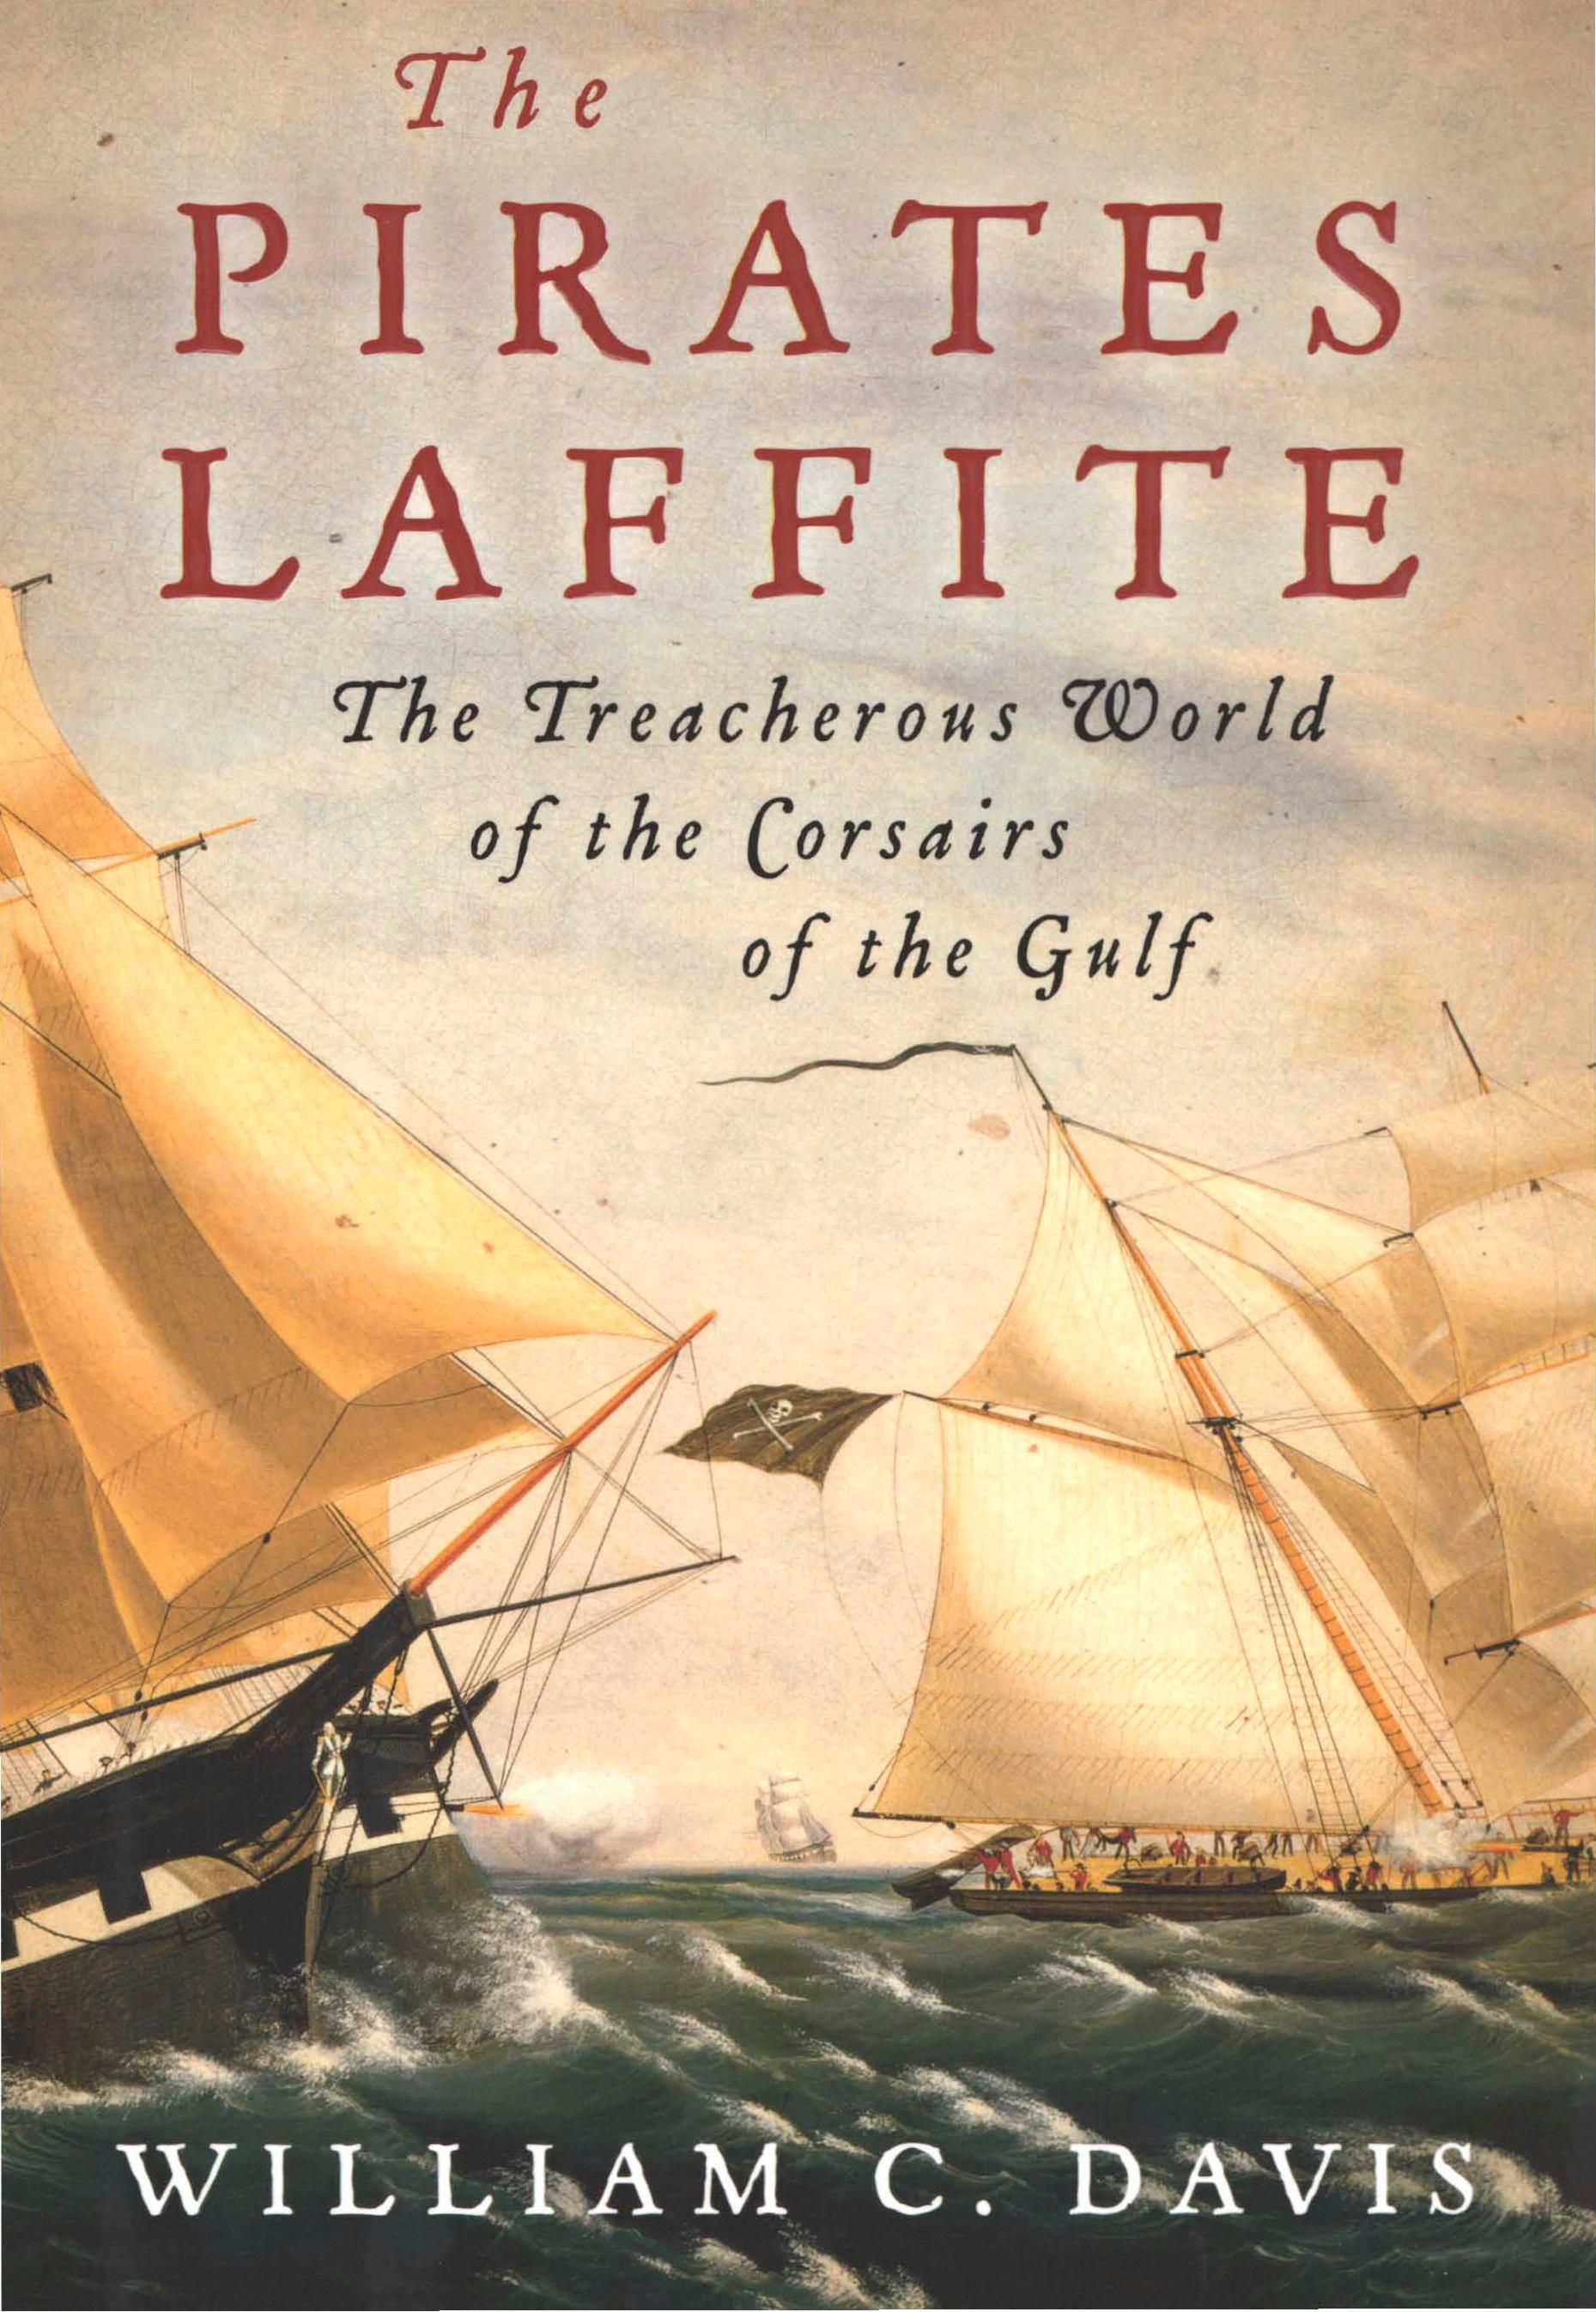 The Pirates Laffite By: William C. Davis